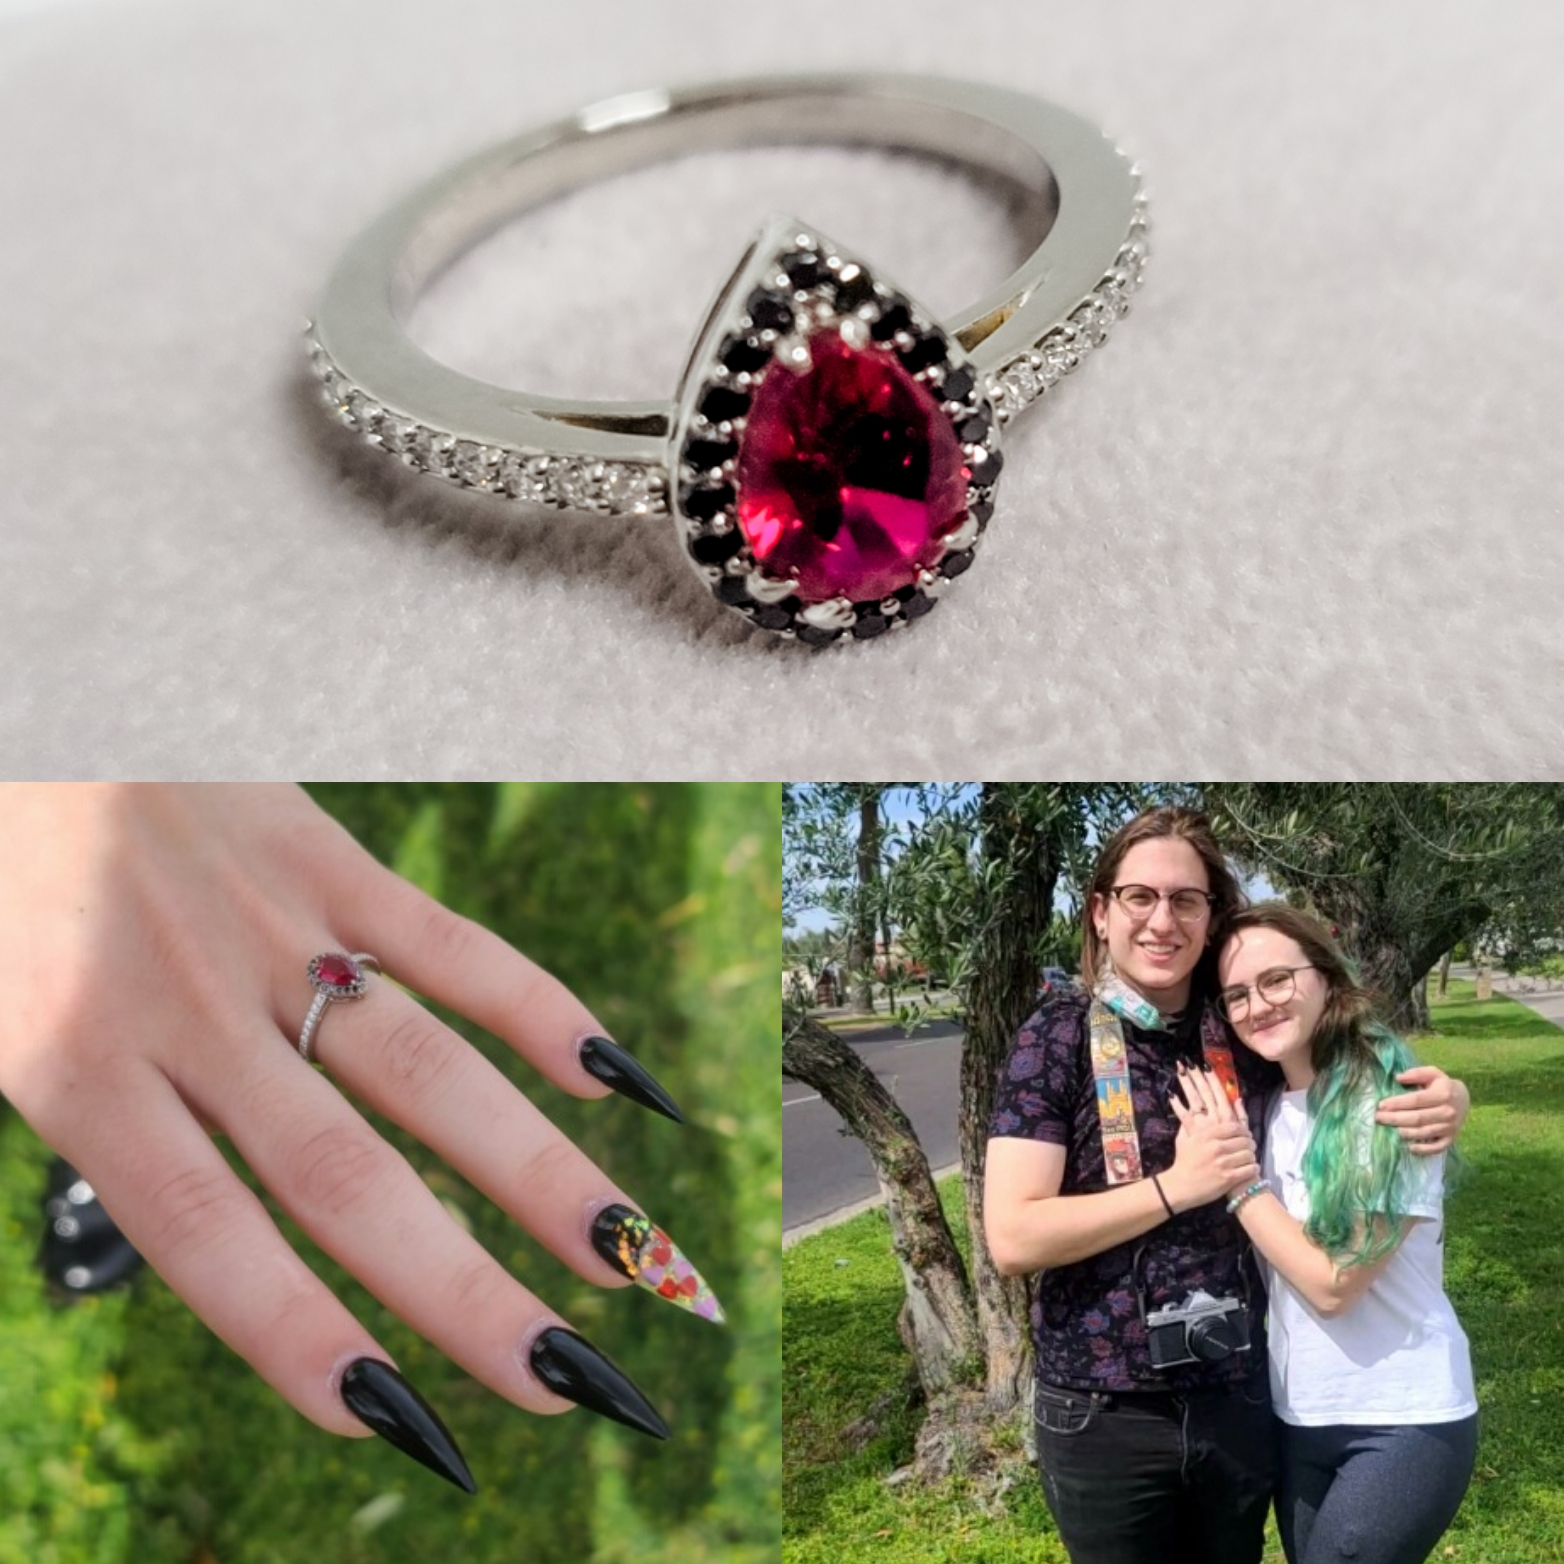 Wedding proposal with red stone engagement ring